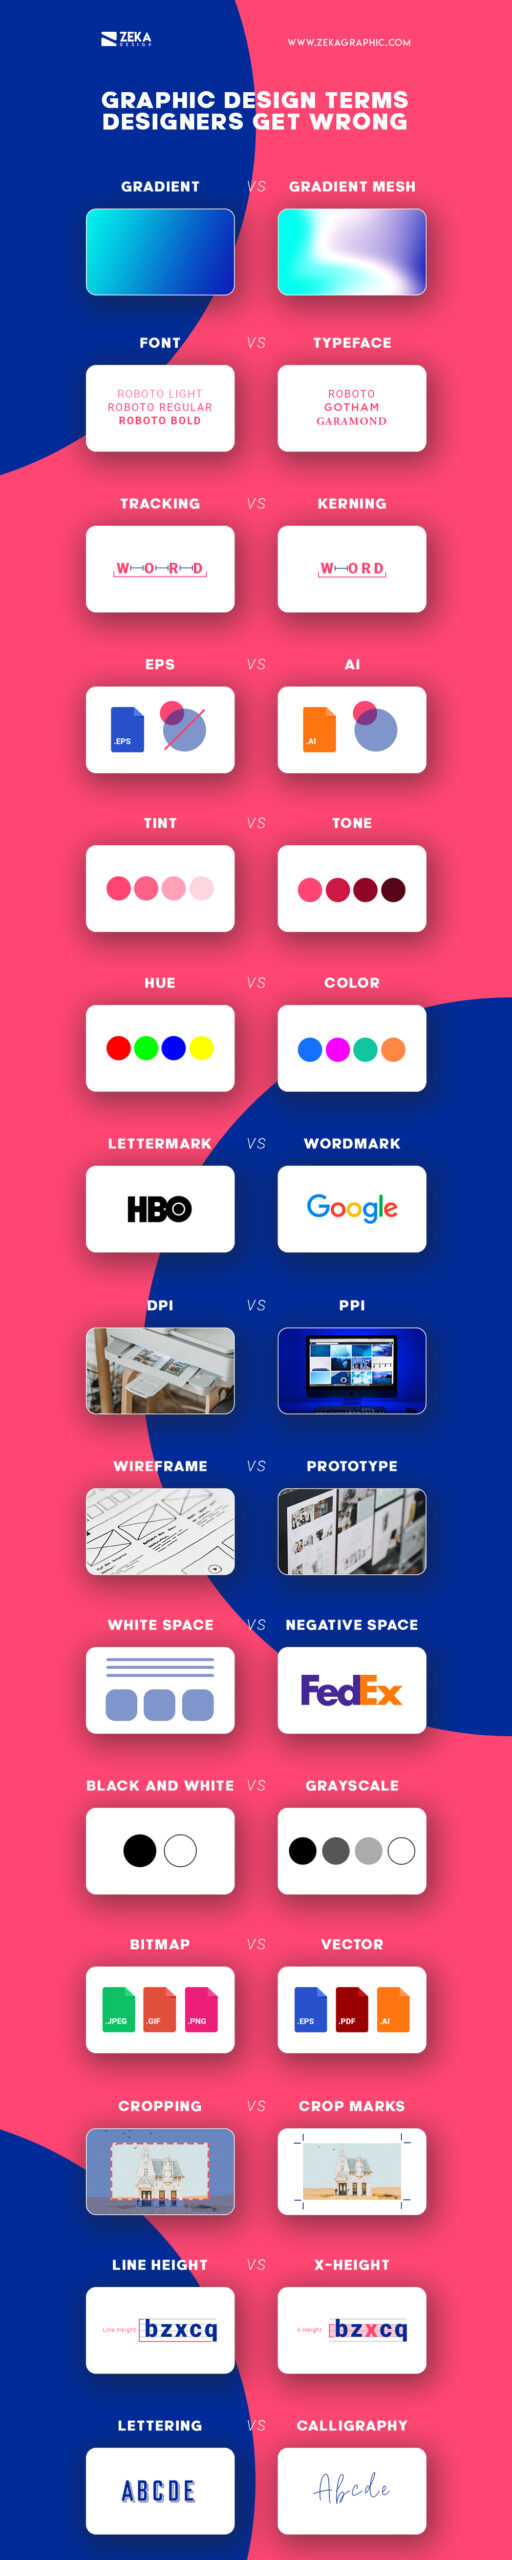 Graphic Design Terms Designers Get Wrong Infographic